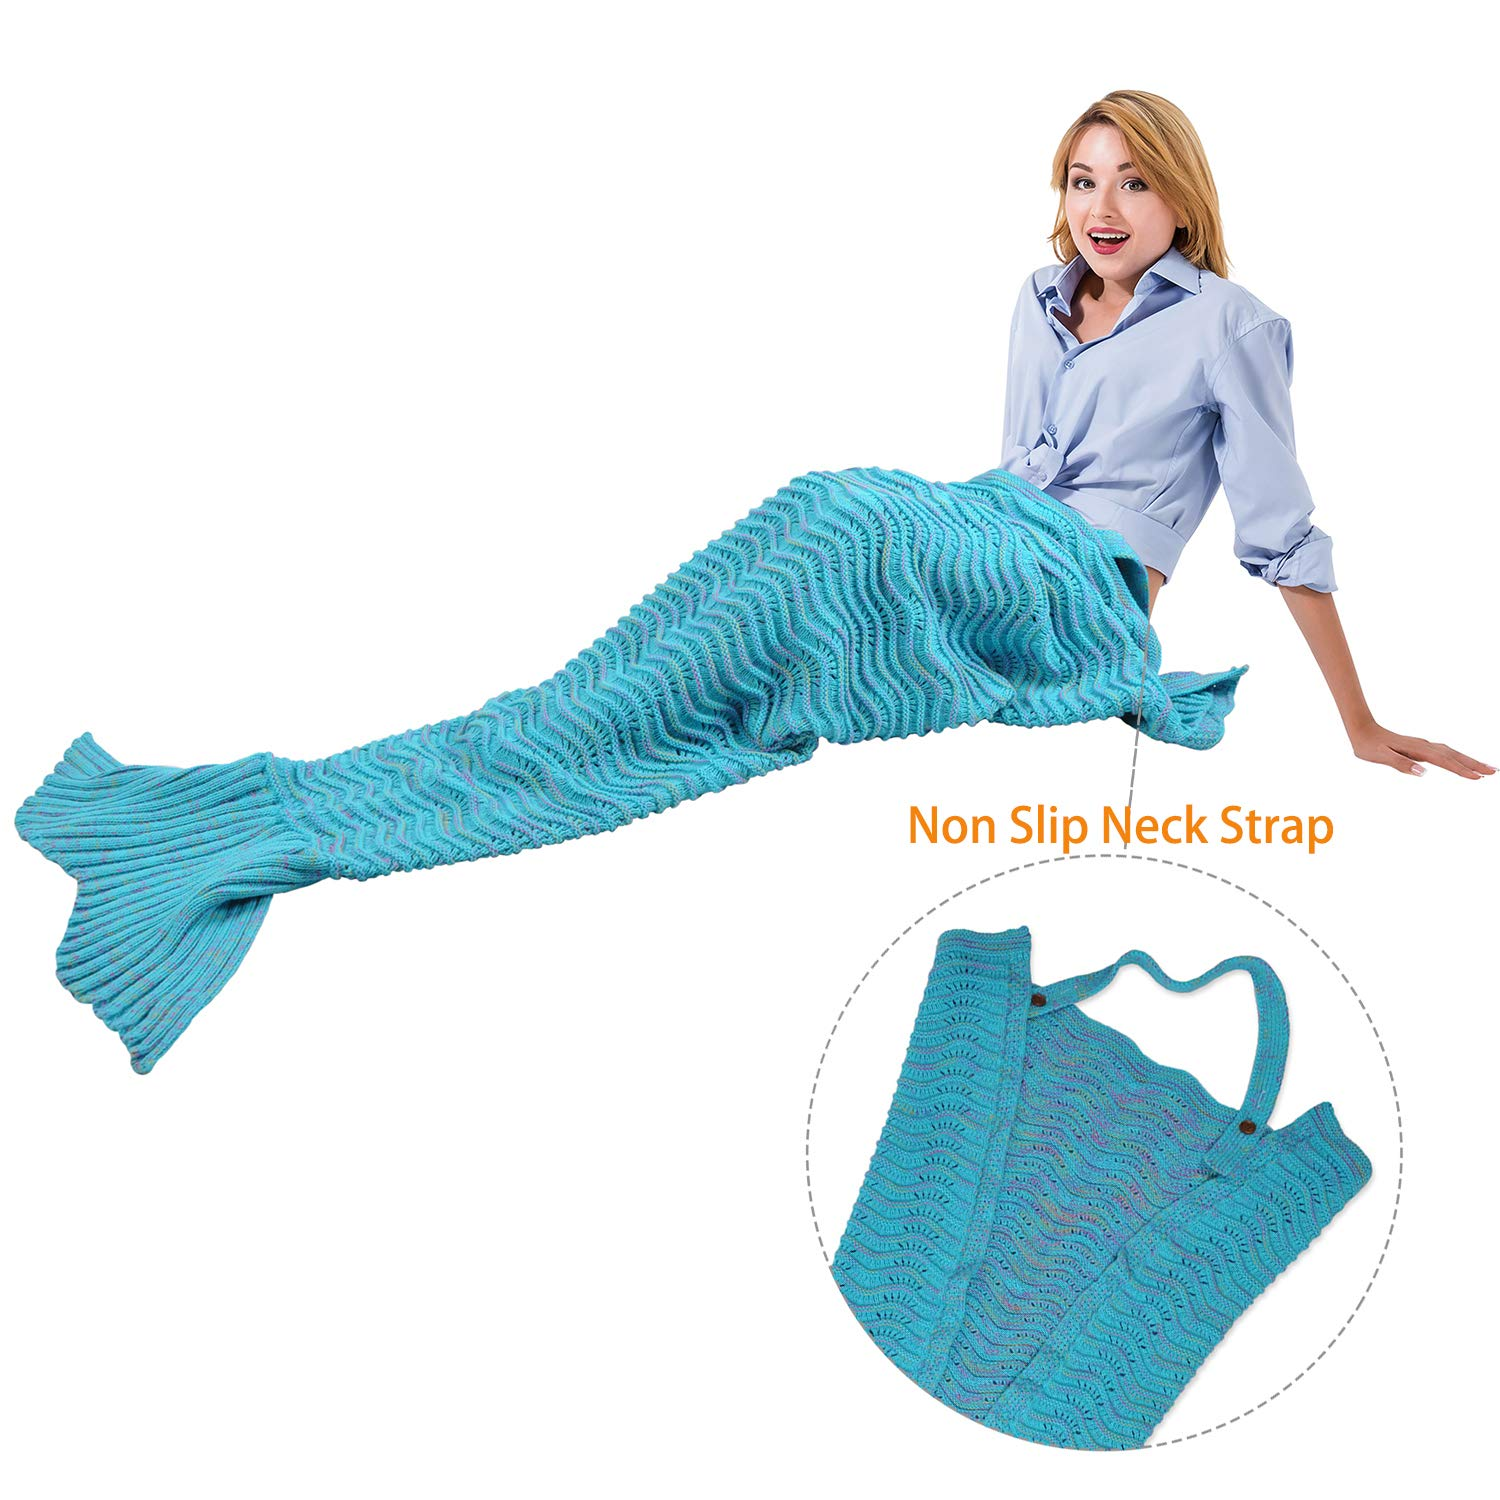 Mermaid Tail Blanket with Anti-Slip Neck Strap,Soft Knitted Mermaid Blanket Holiday Birthday Valentines Gift for Girls Women Adults Teens All Seasons Sleeping Bag Blue By Catalonia